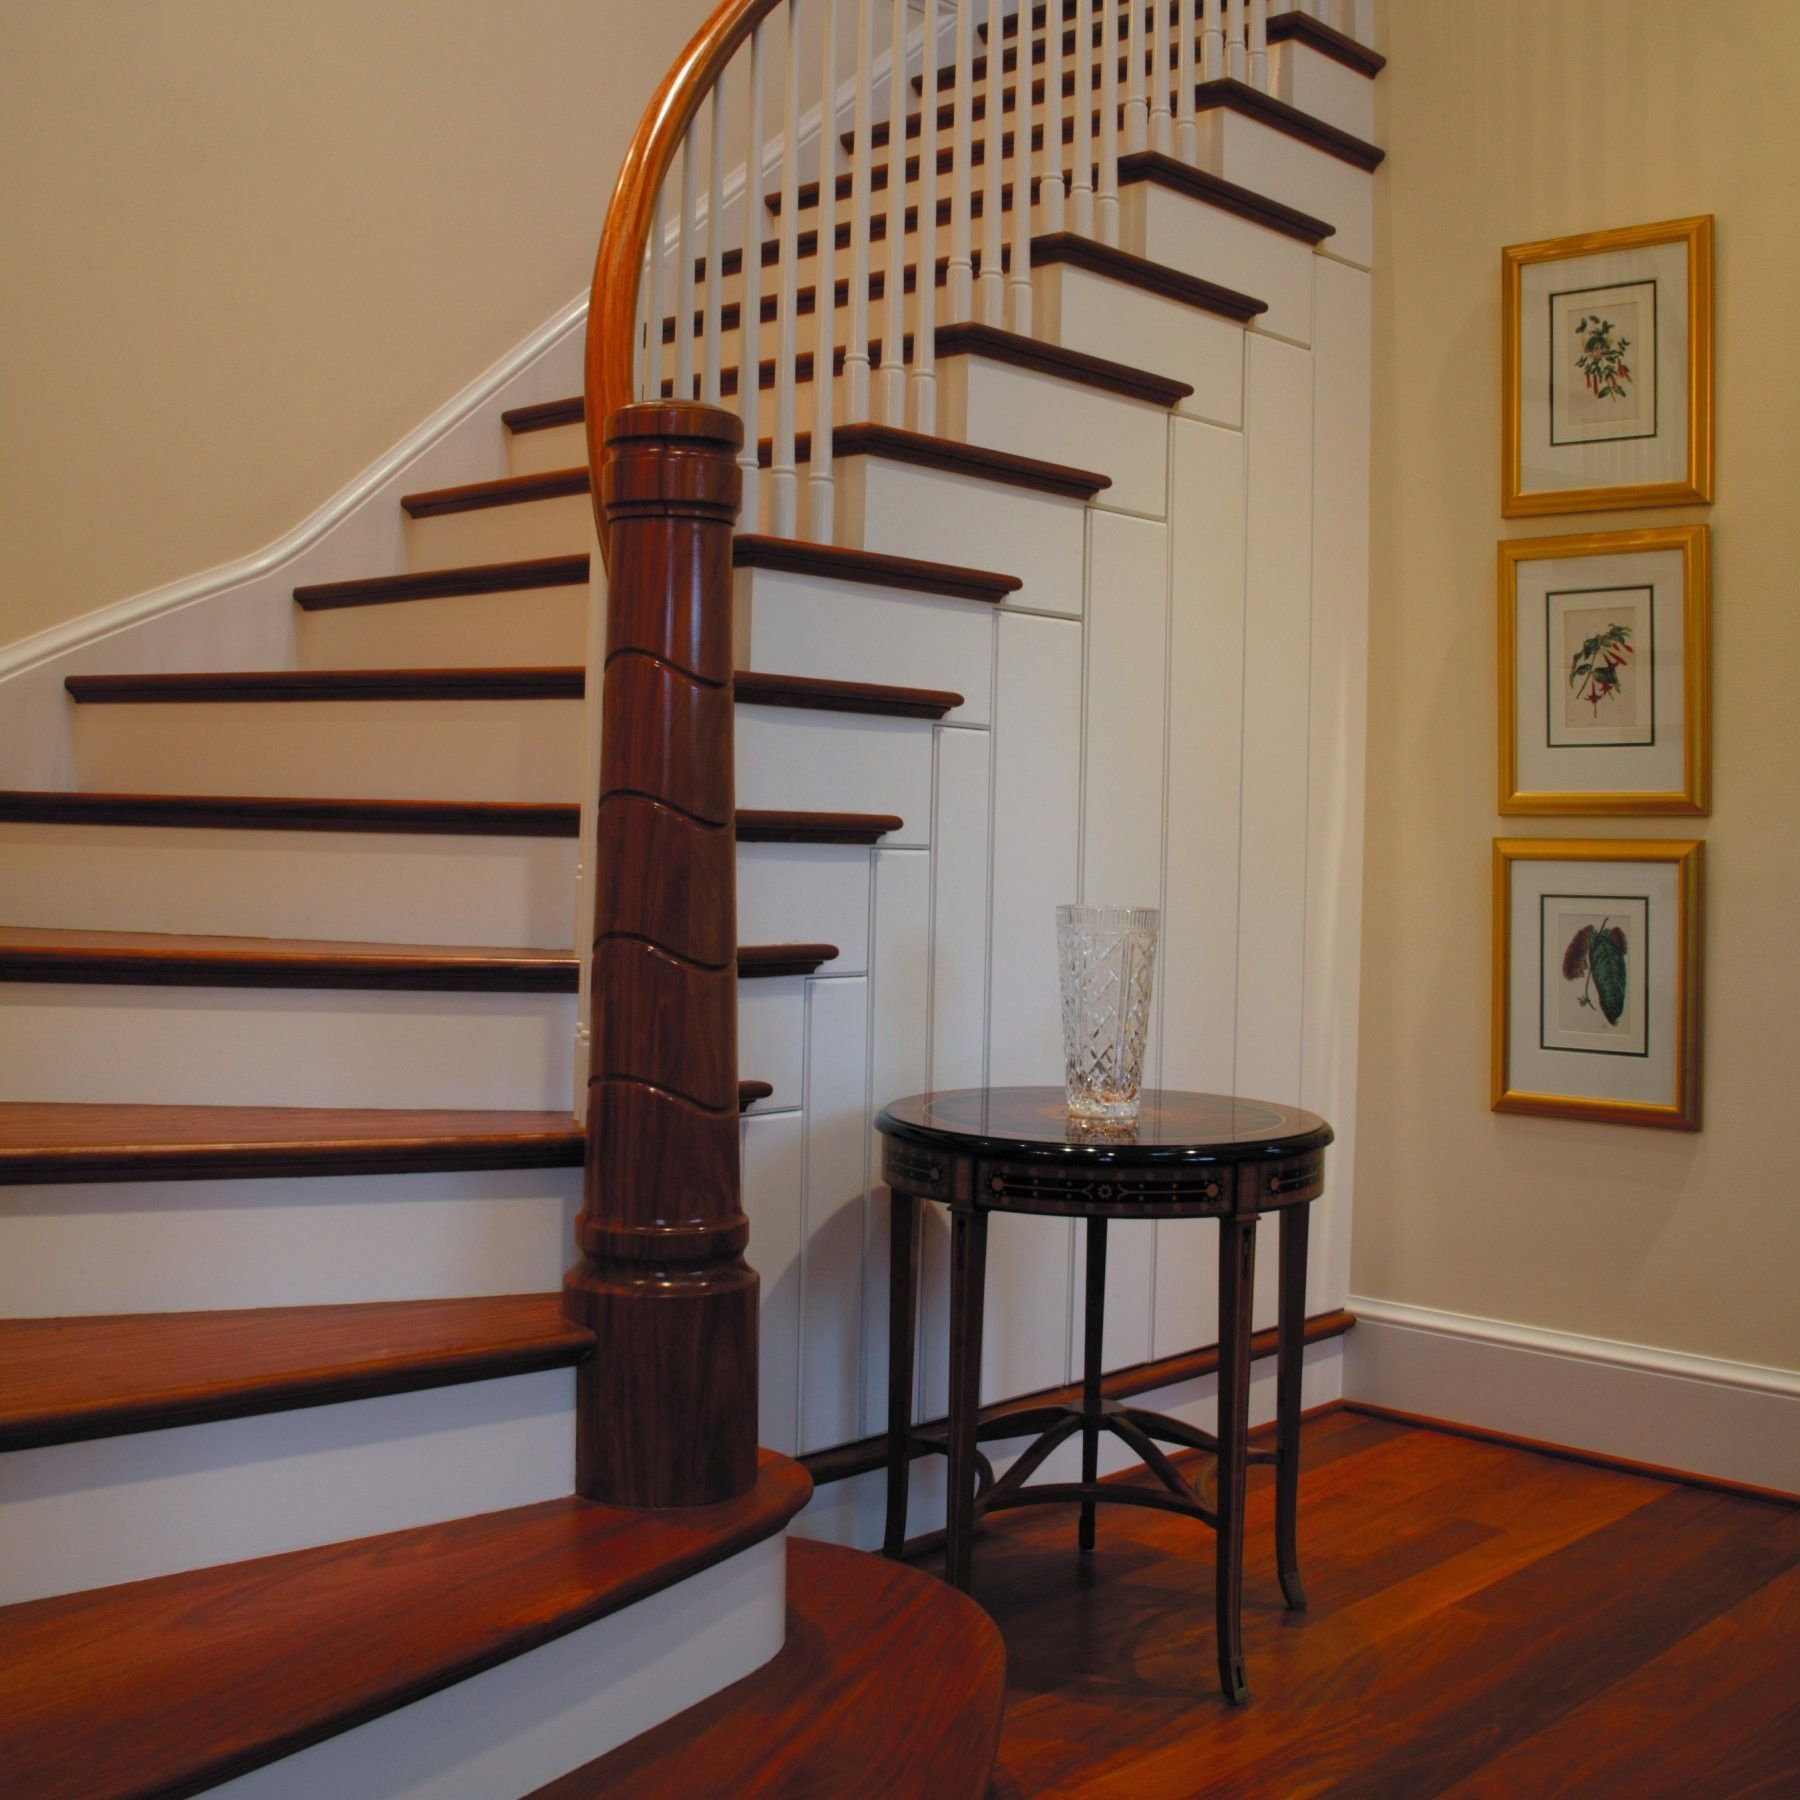 Decorating A Staircase Ideas Inspiration: 30+ Creative Stair Decoration Ideas